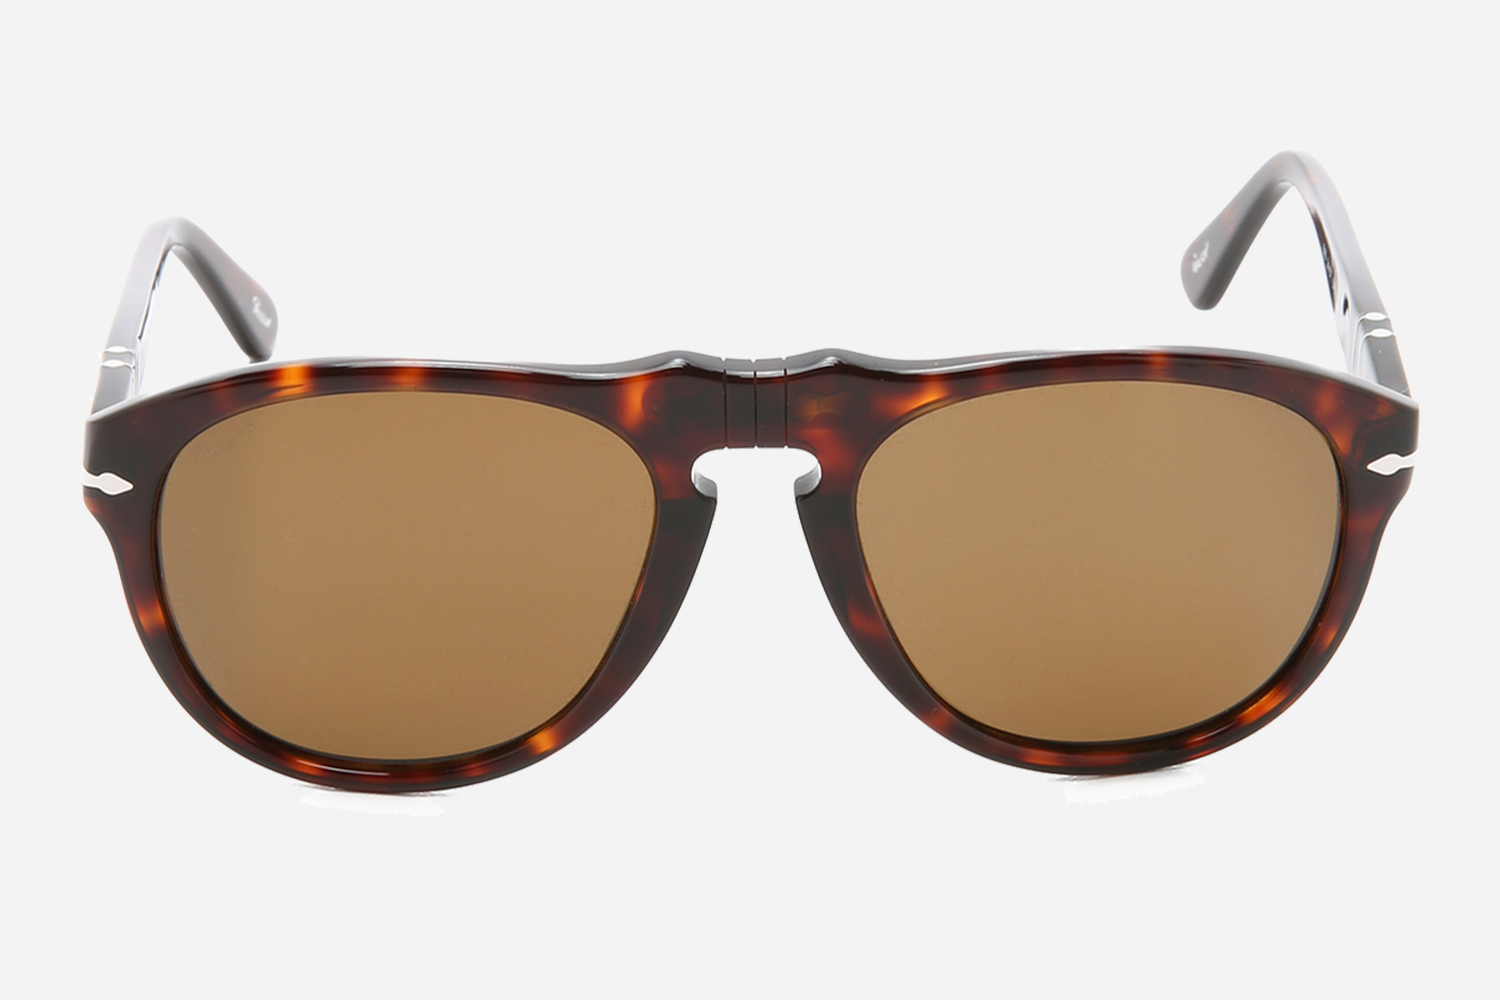 Get a Discount on Persol Classic Tortoiseshell Sunglasses